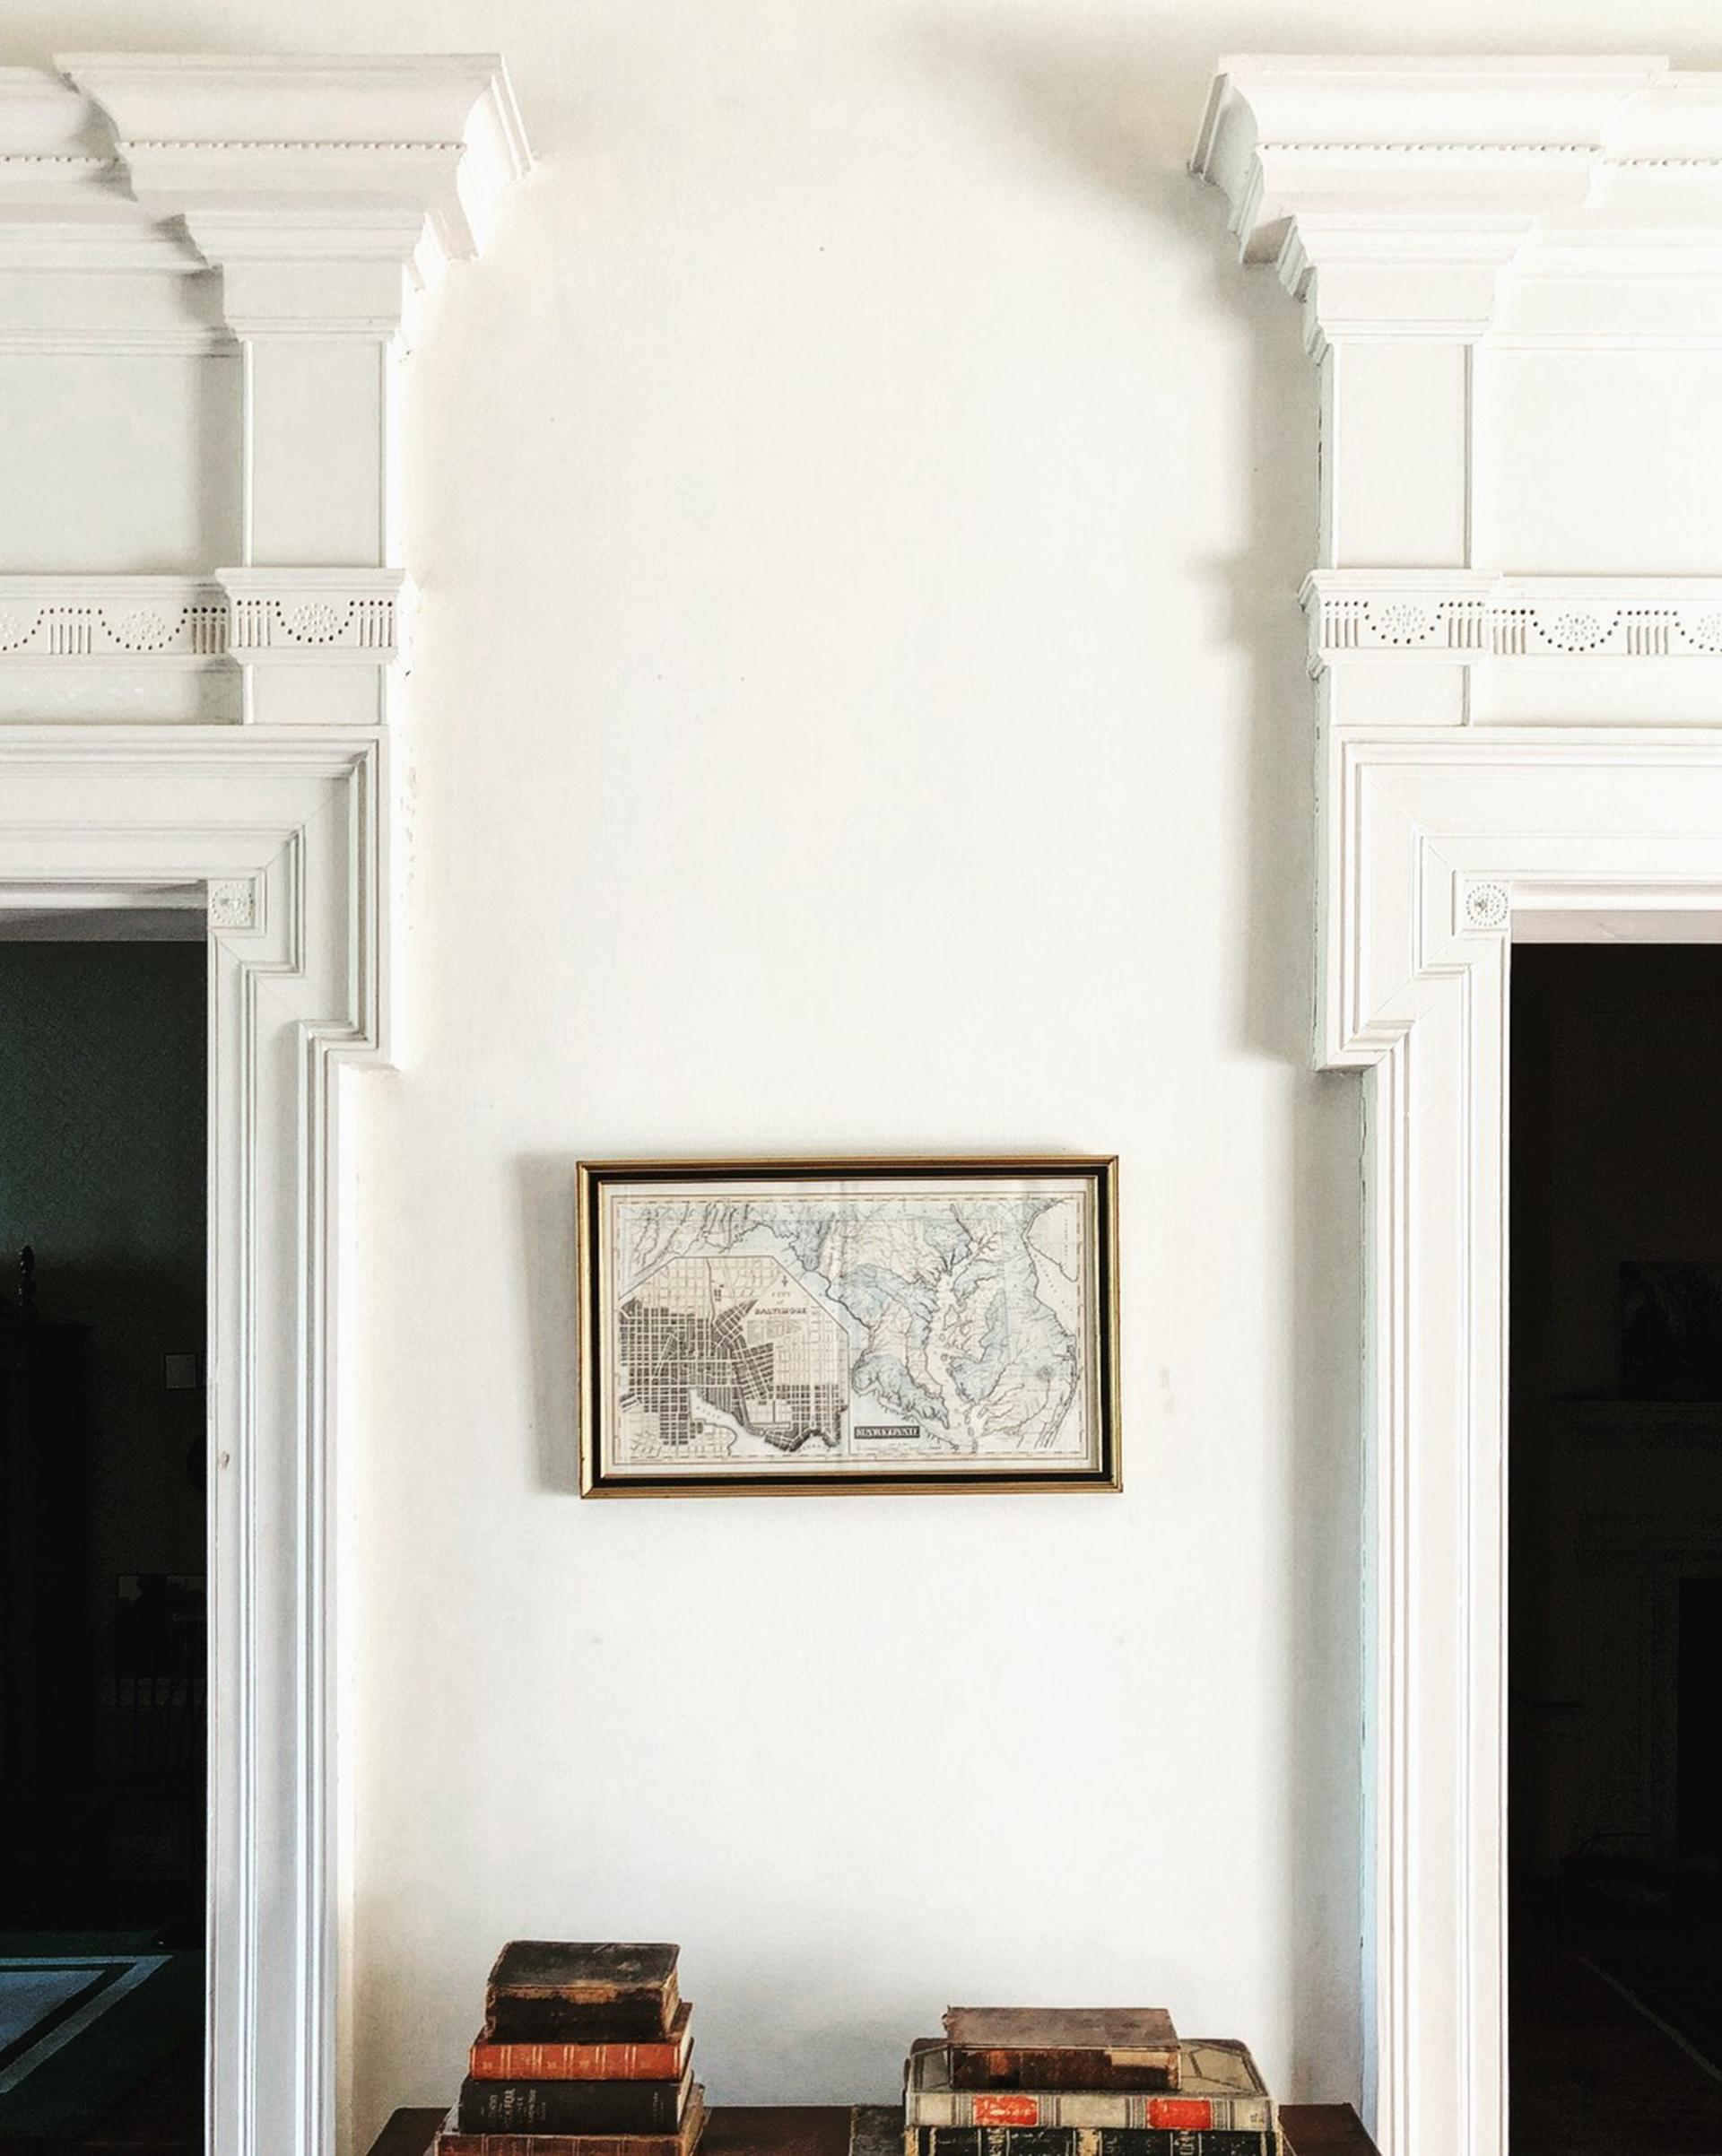 a framed historic map hanging on the wall between two doorways